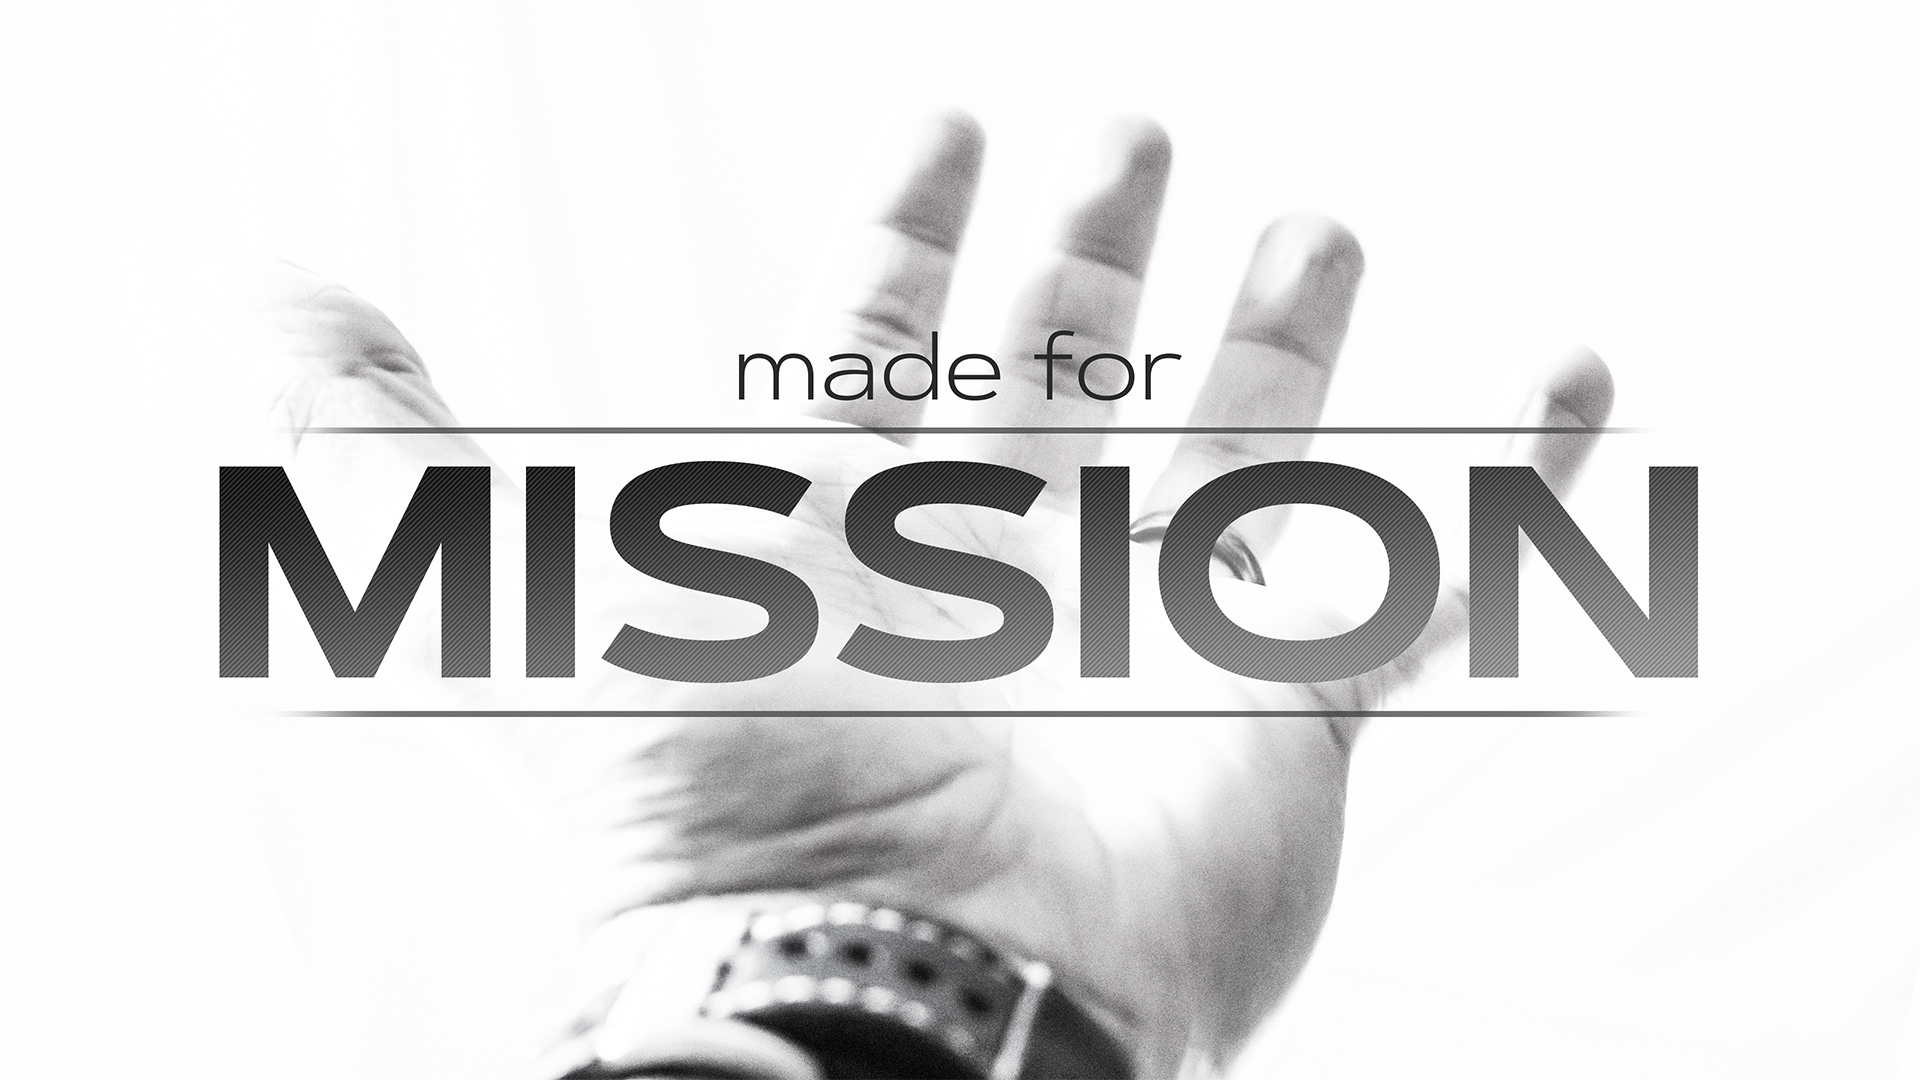 Made for Mission Graphic HD - High Resolution Image (JPG).jpg